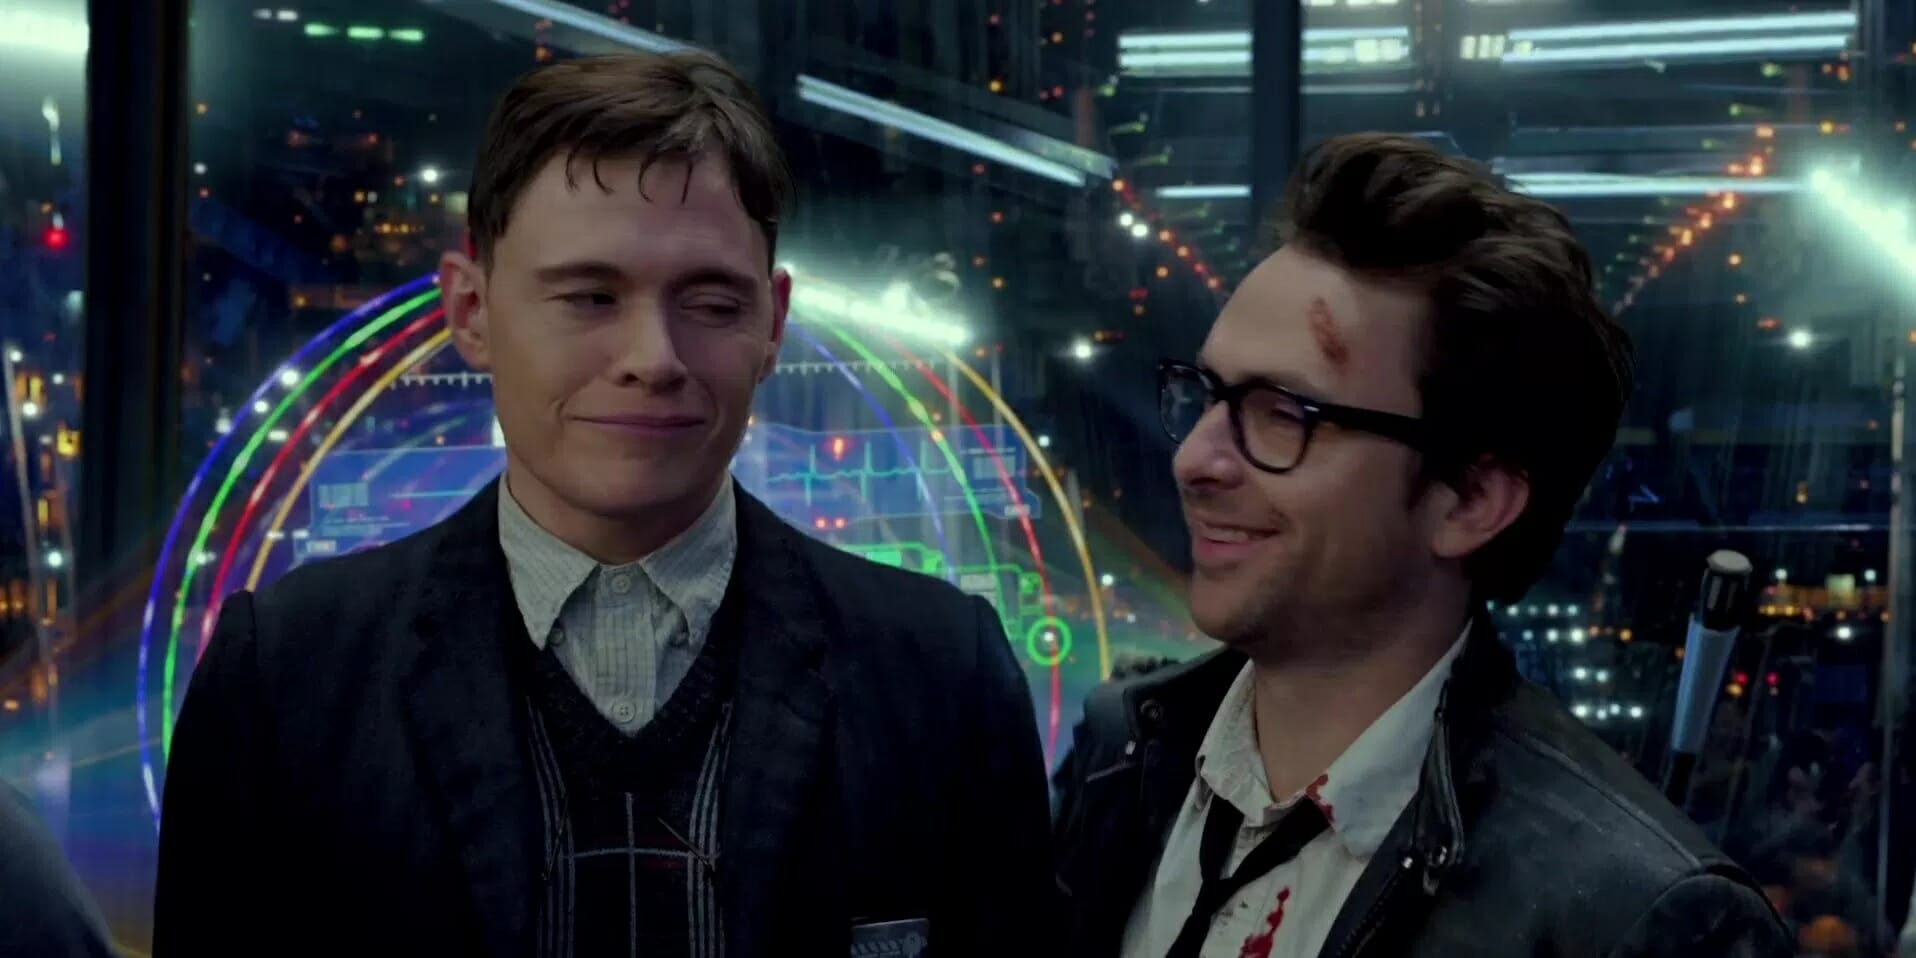 'Pacific Rim' Actor Charlie Day Says Fanfic Informed His Performance